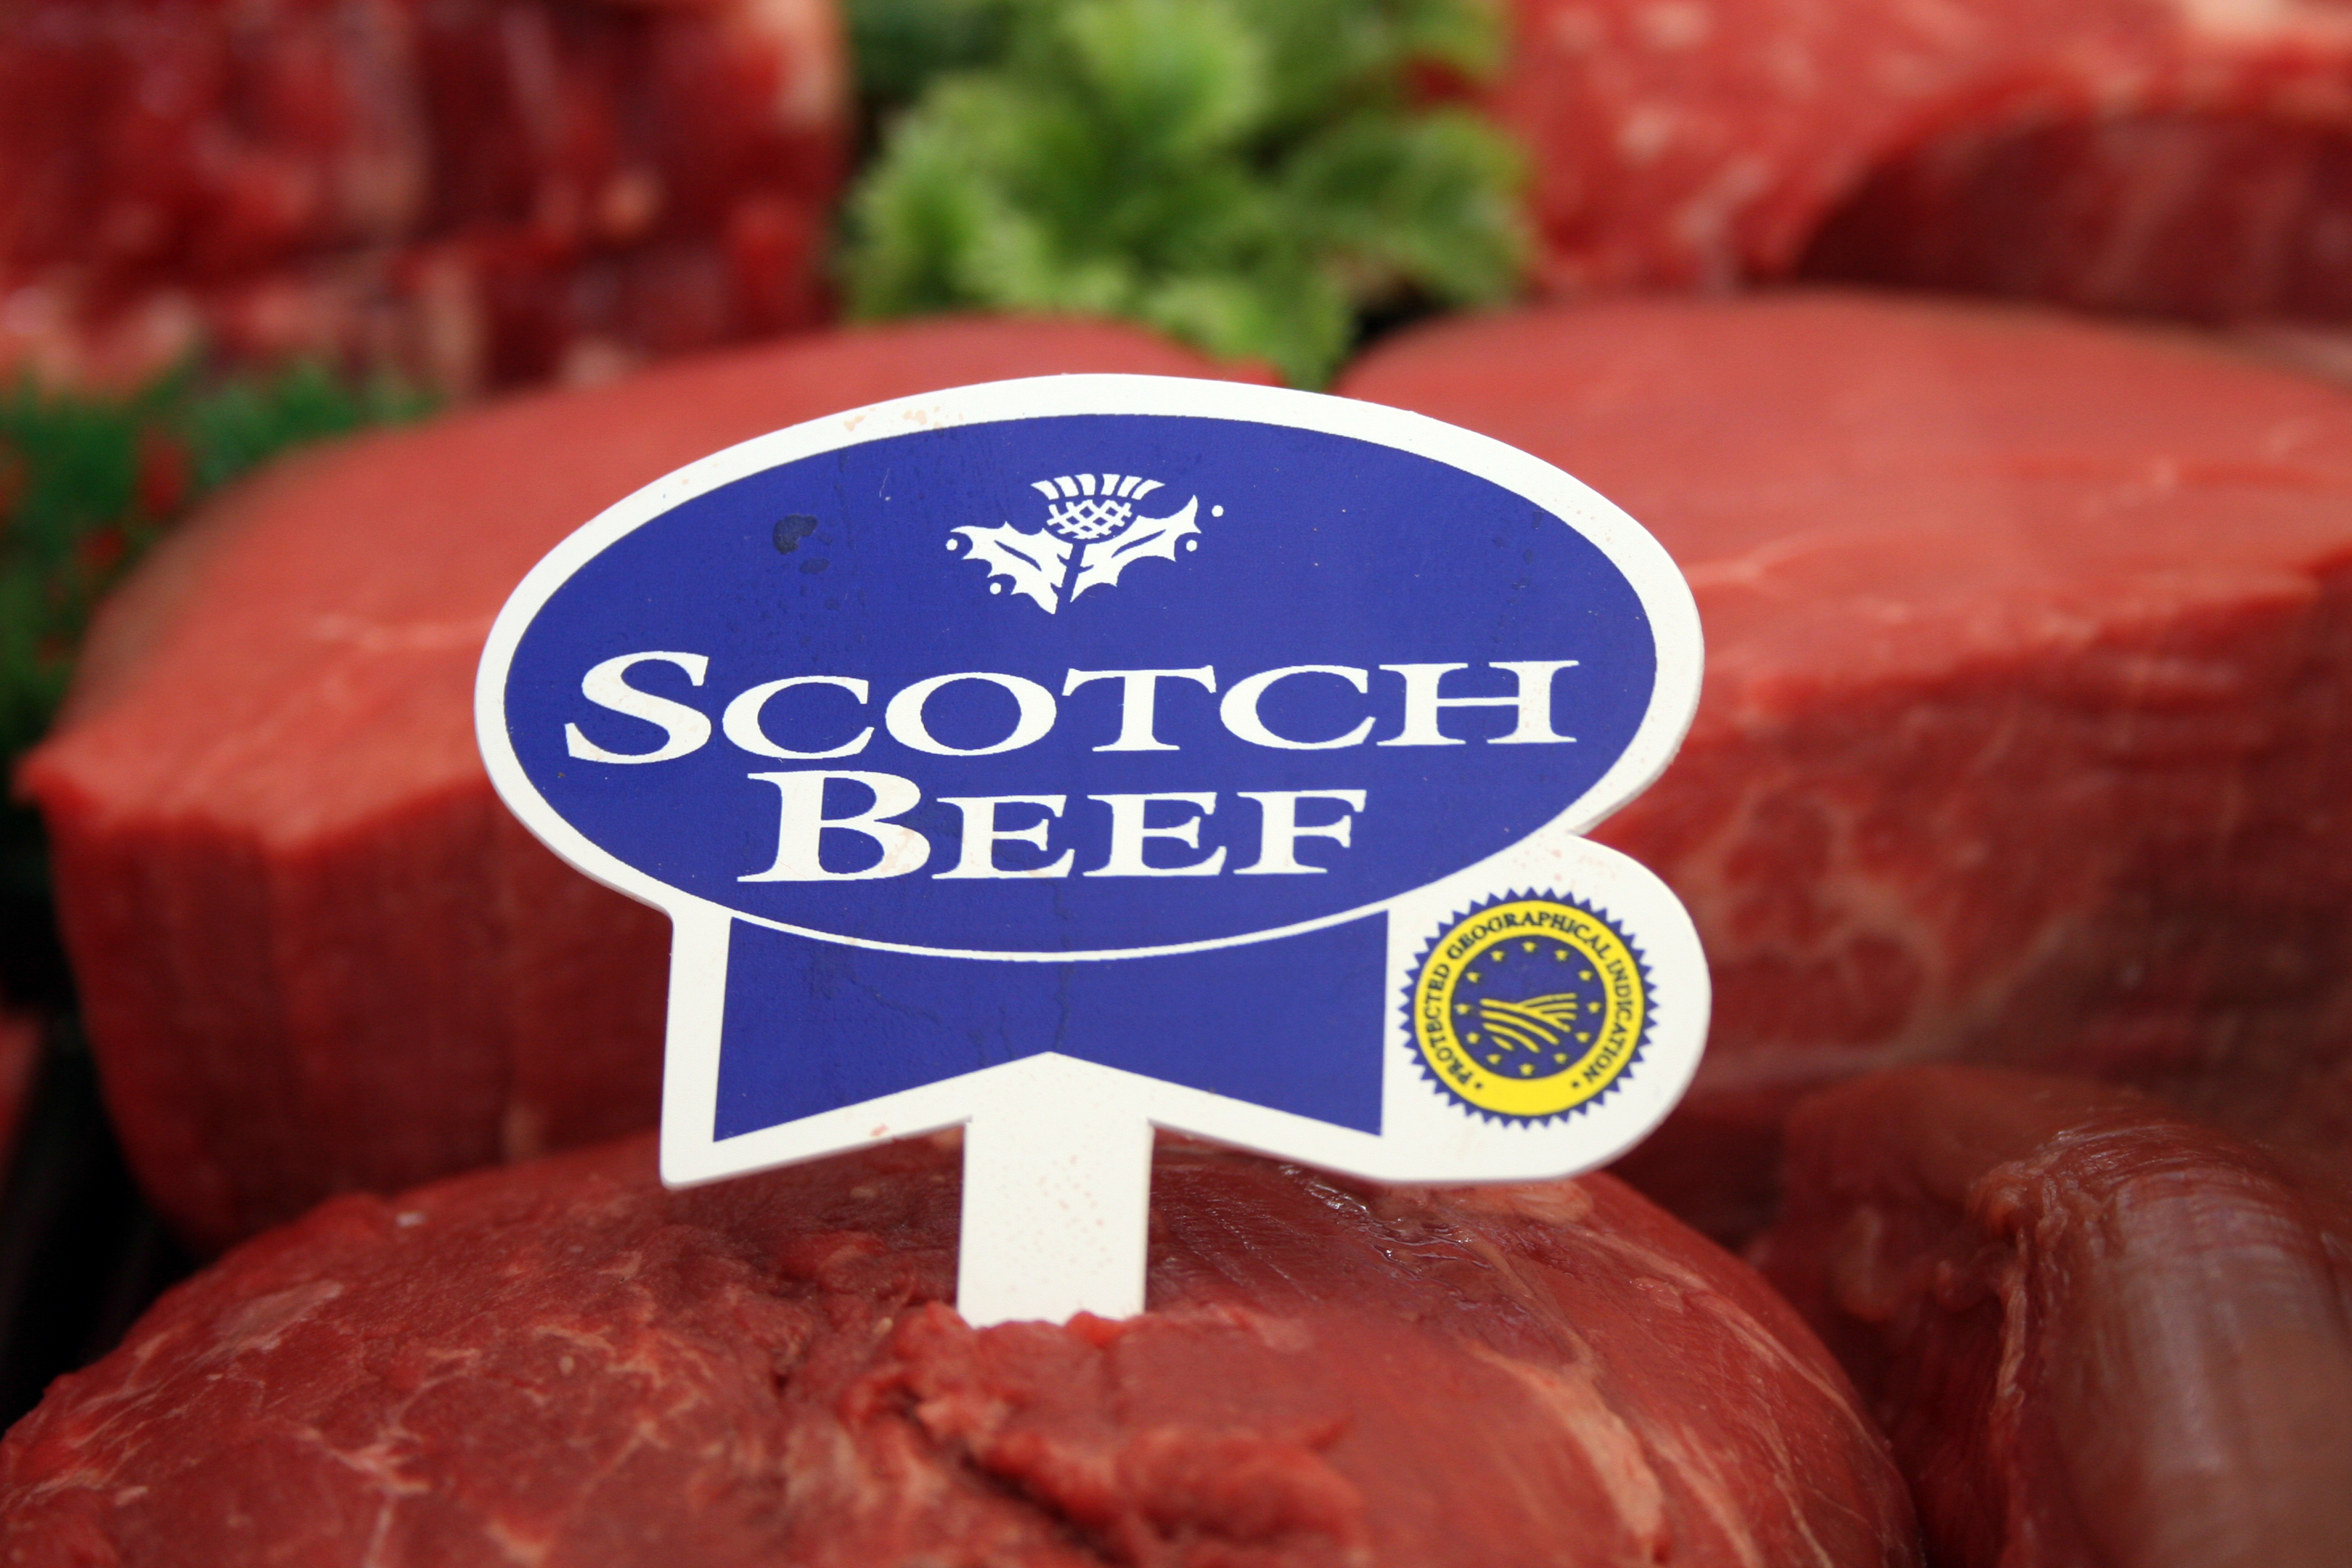 Geographical indications have been shown to deliver added value for some products